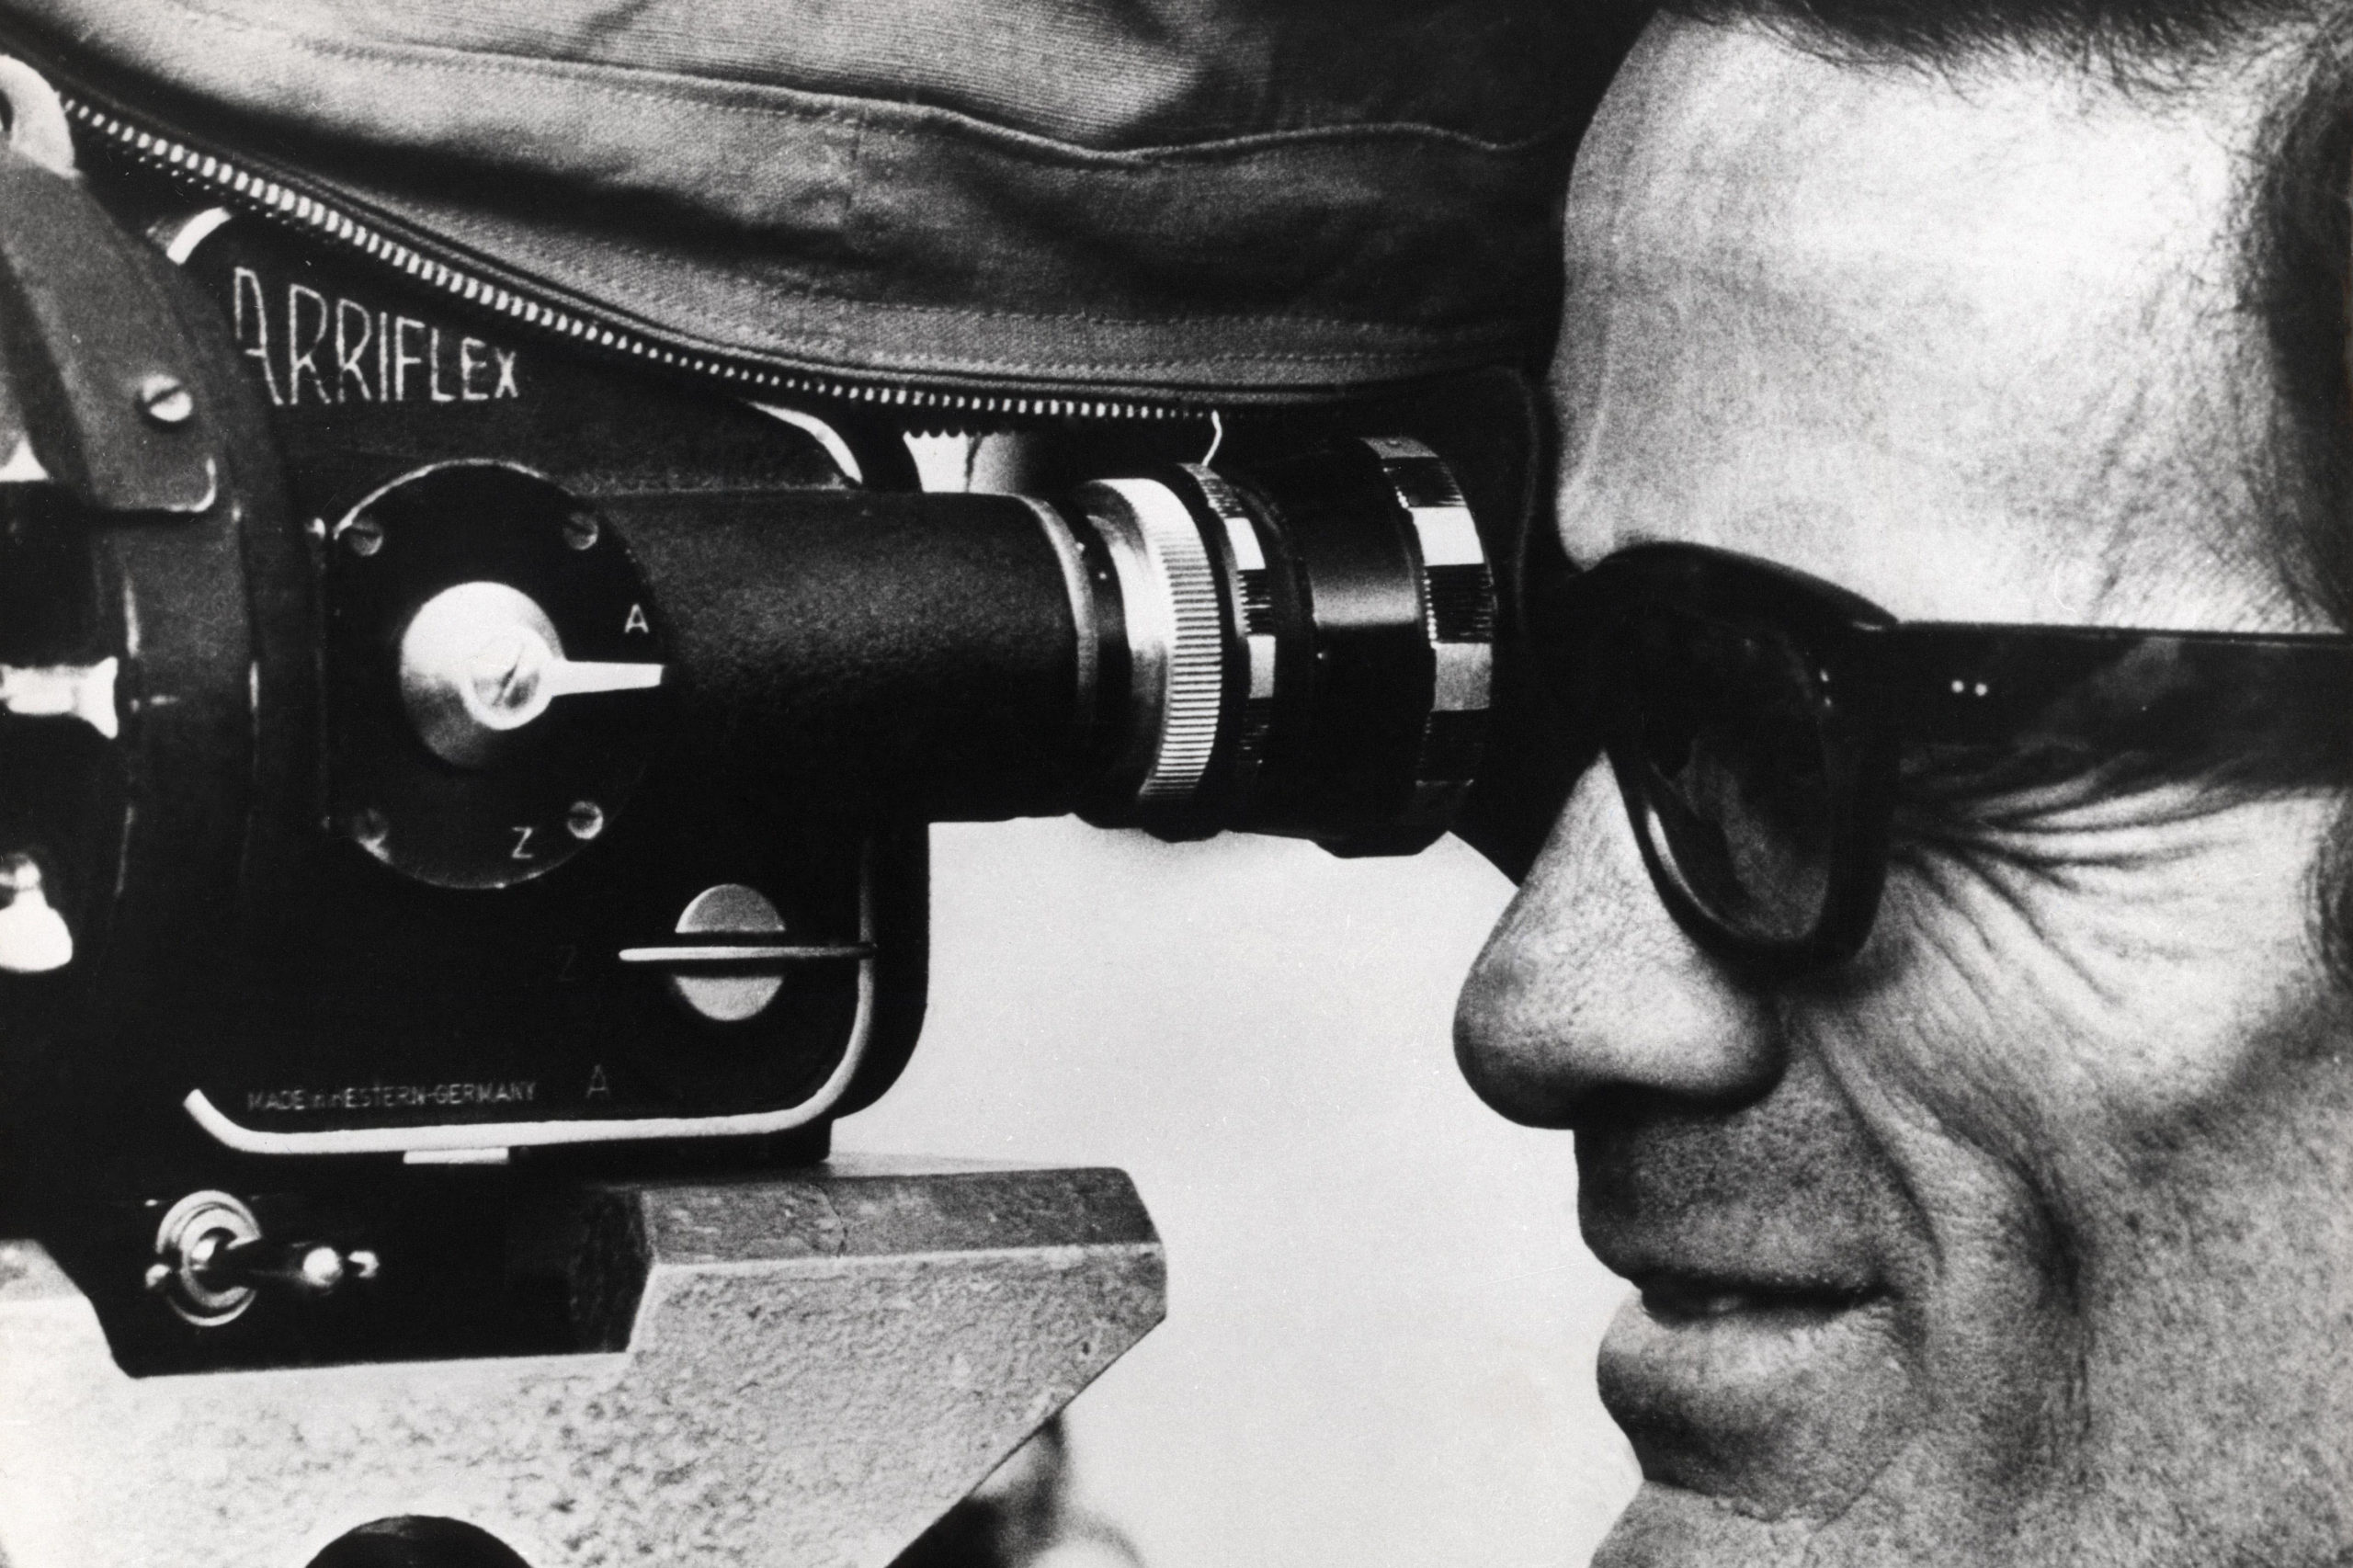 EJ24MJ Uccellacci e uccellini The Hawks and the Sparrows Year : 1966 Italy Director : Pier Paolo Pasolini Pier Paolo Pasolini Shooting picture. Image shot 1966. Exact date unknown.